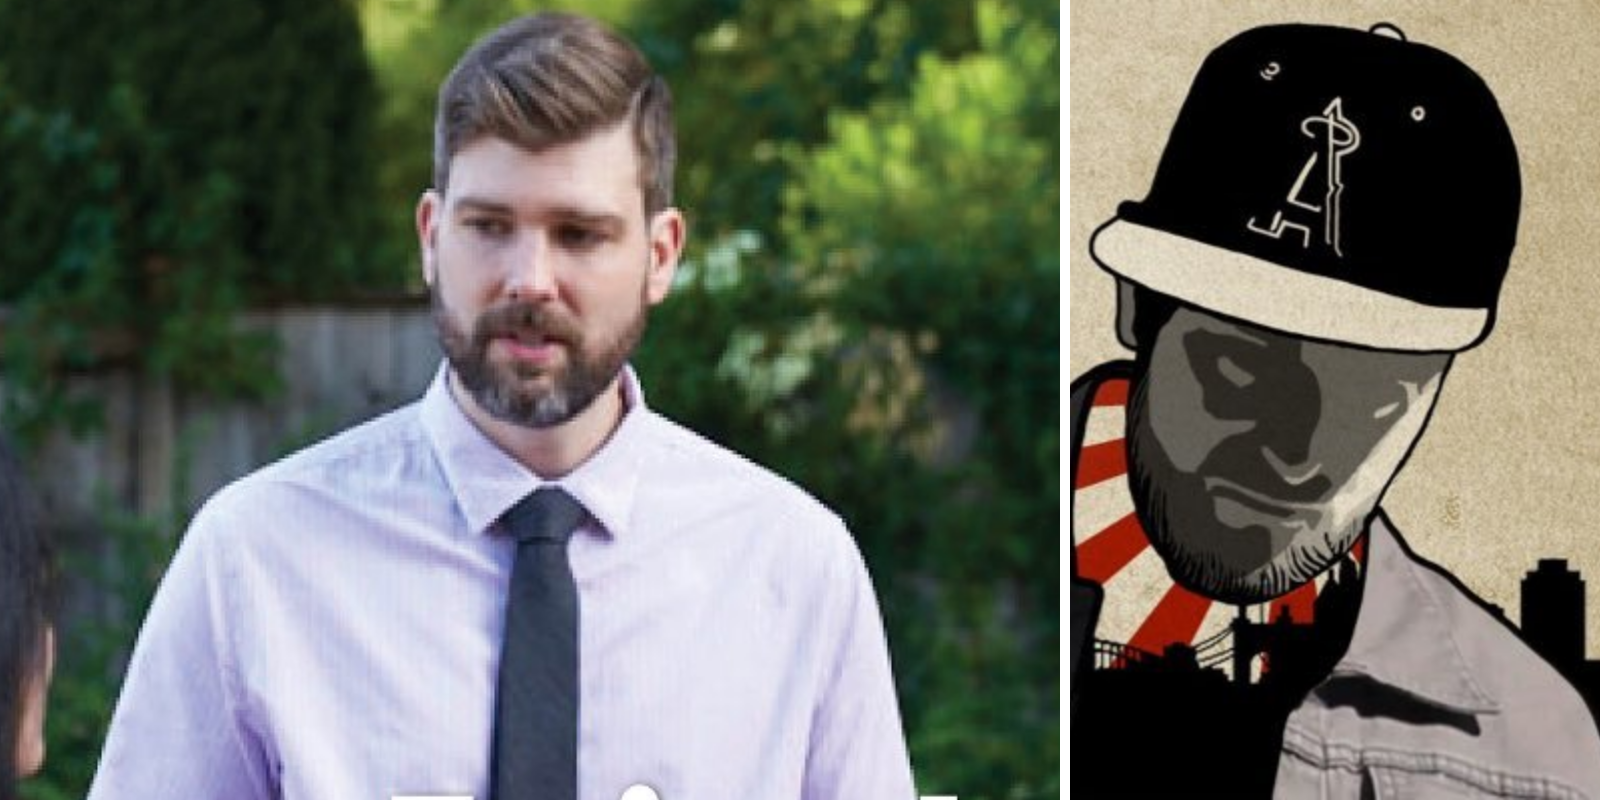 New DA in Portland admits he is 'old buddies' with an Antifa militant